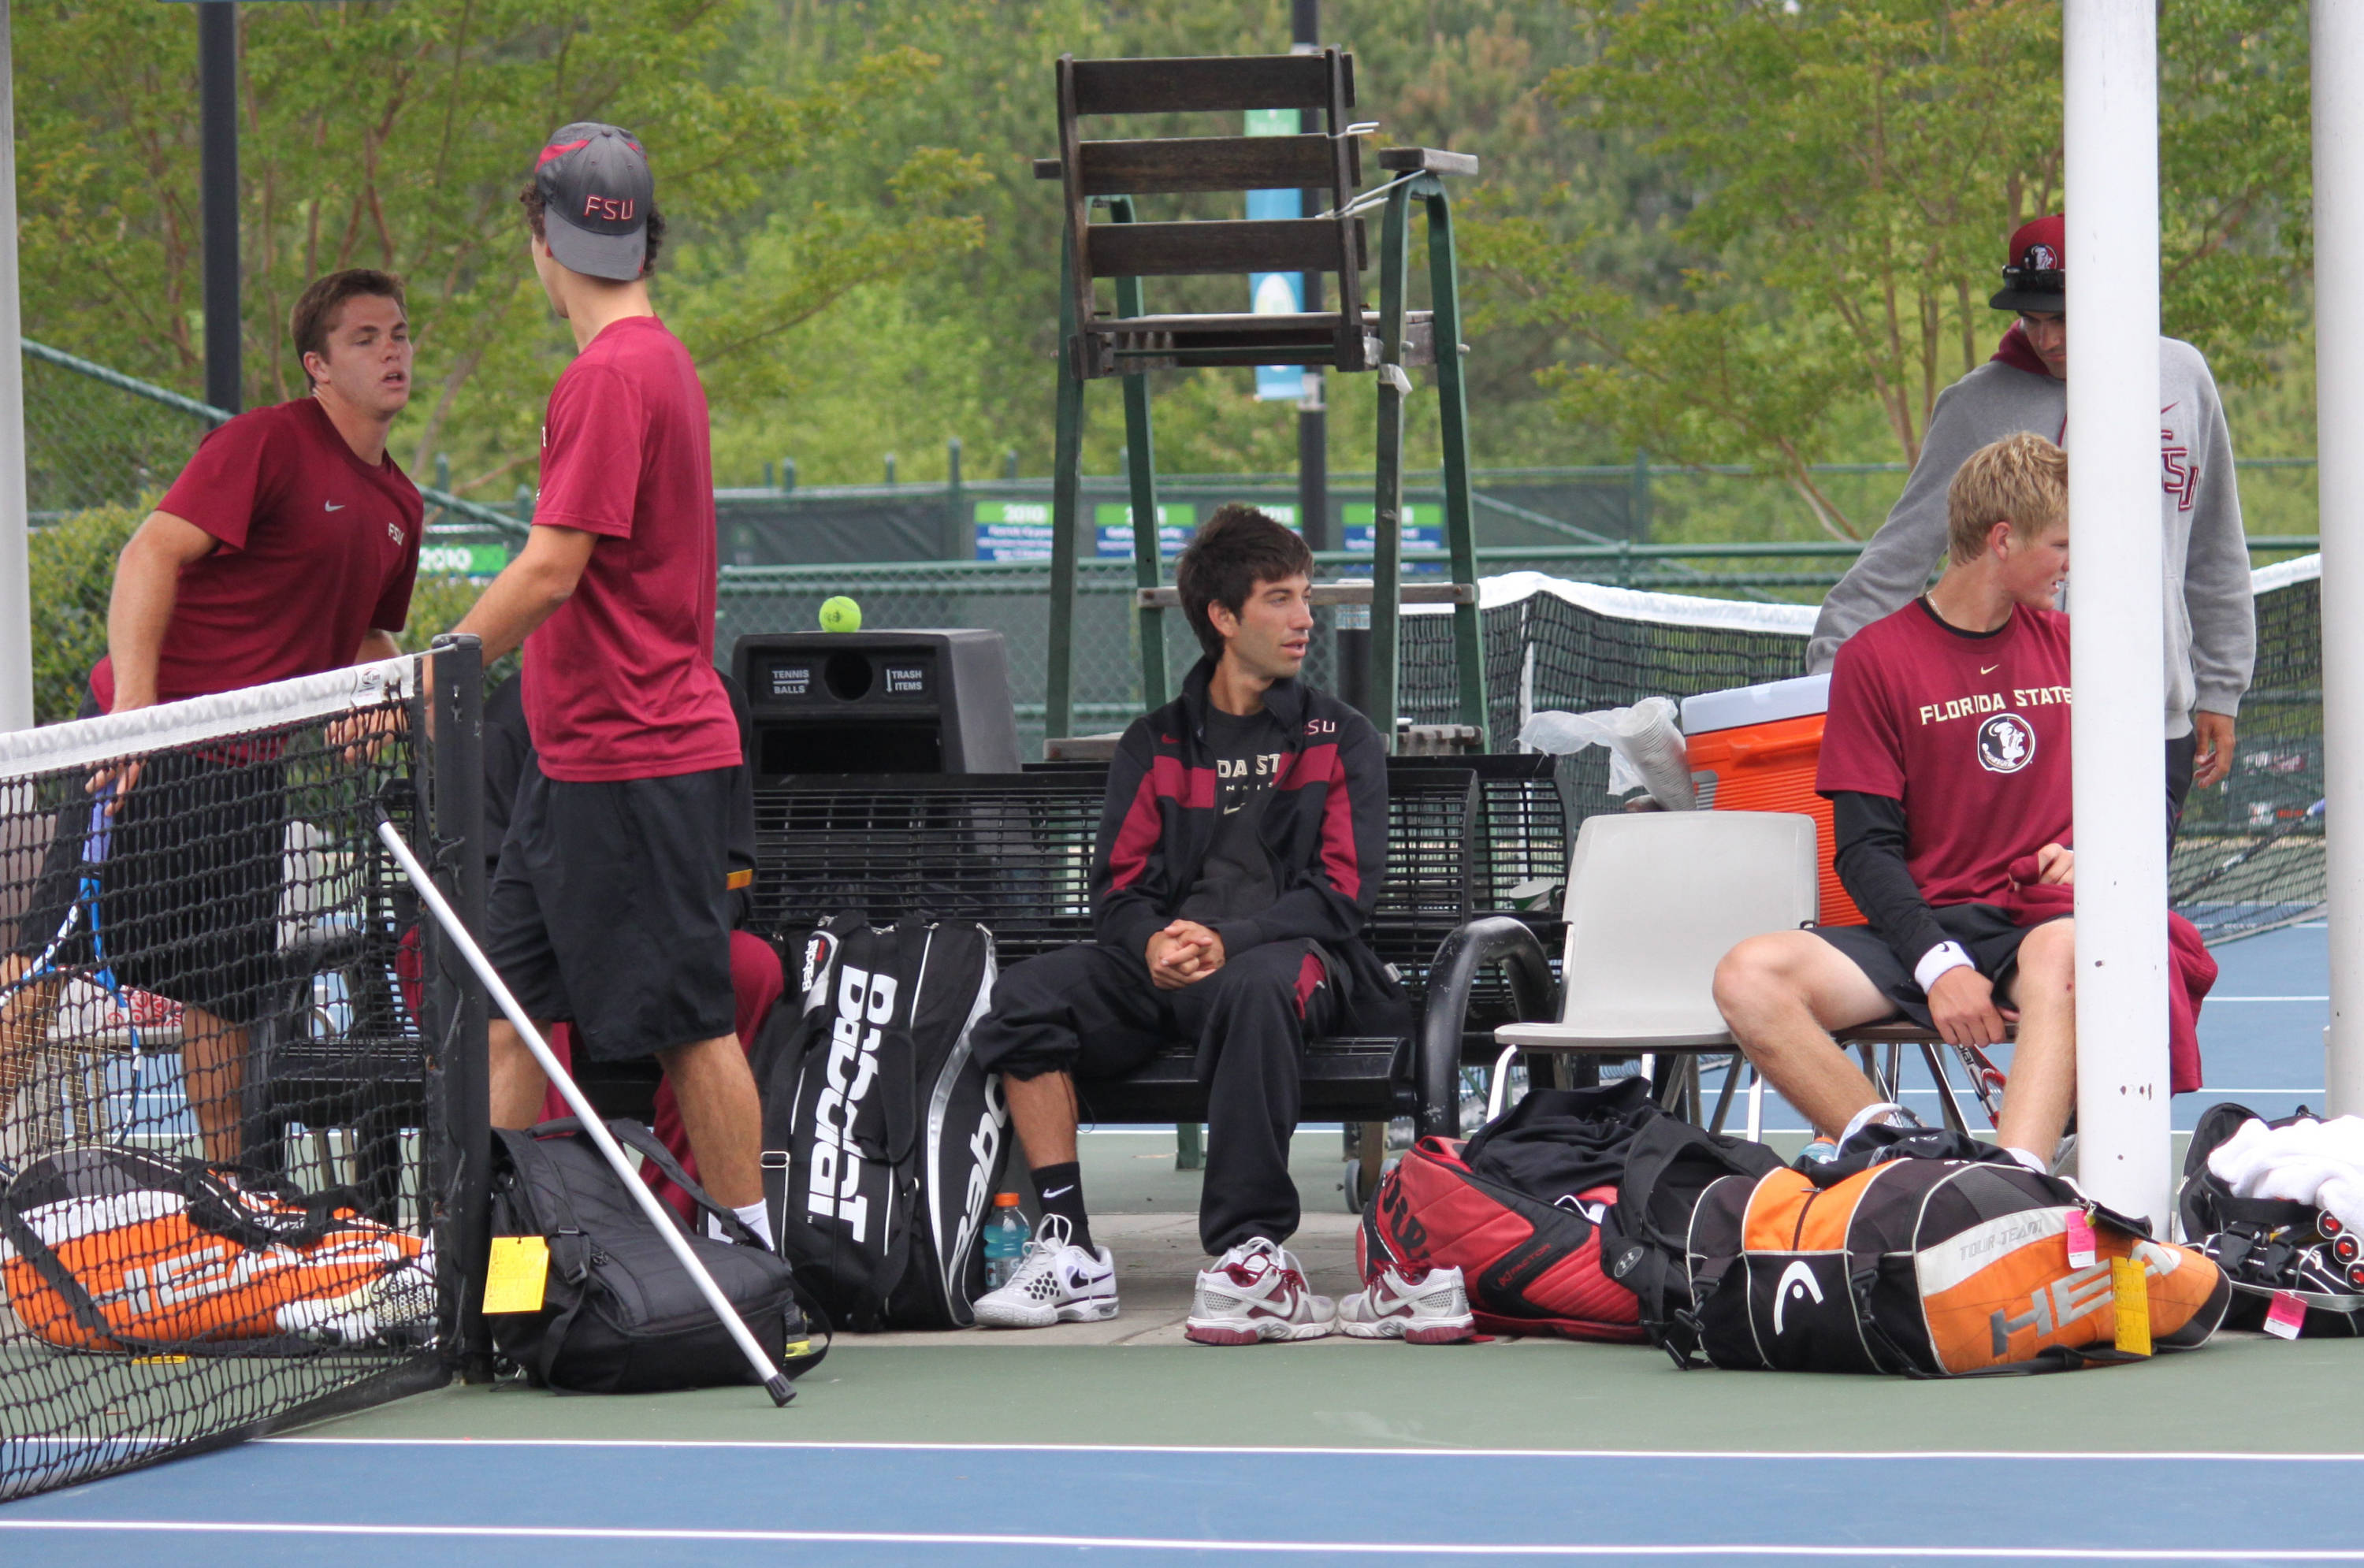 Team getting ready for doubles.